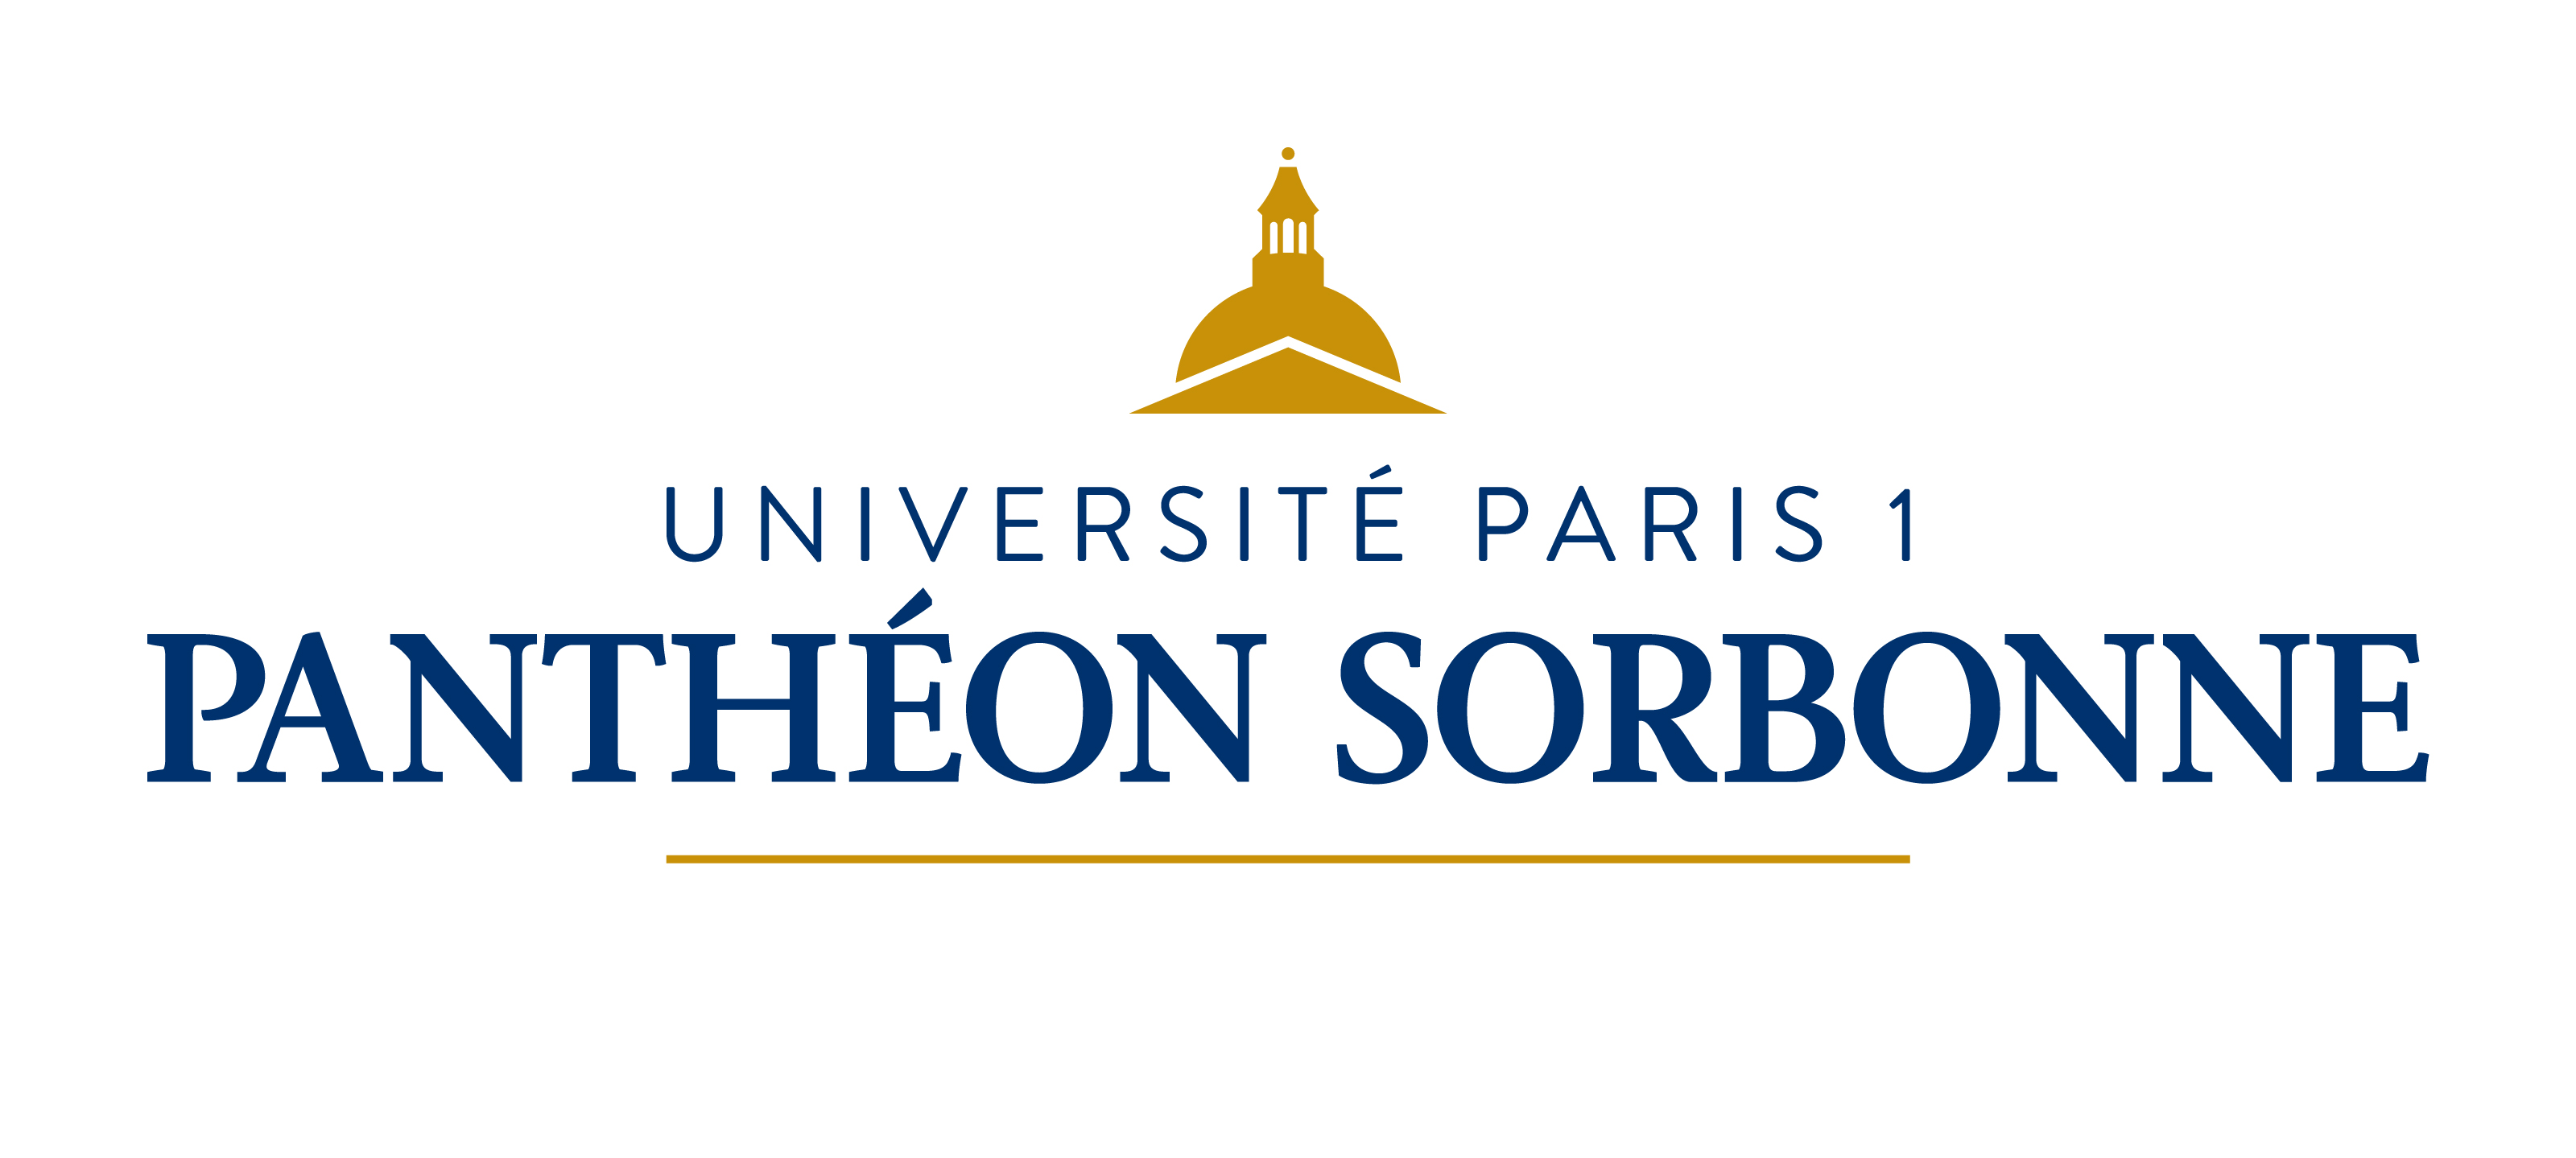 https://www.univ-paris1.fr/